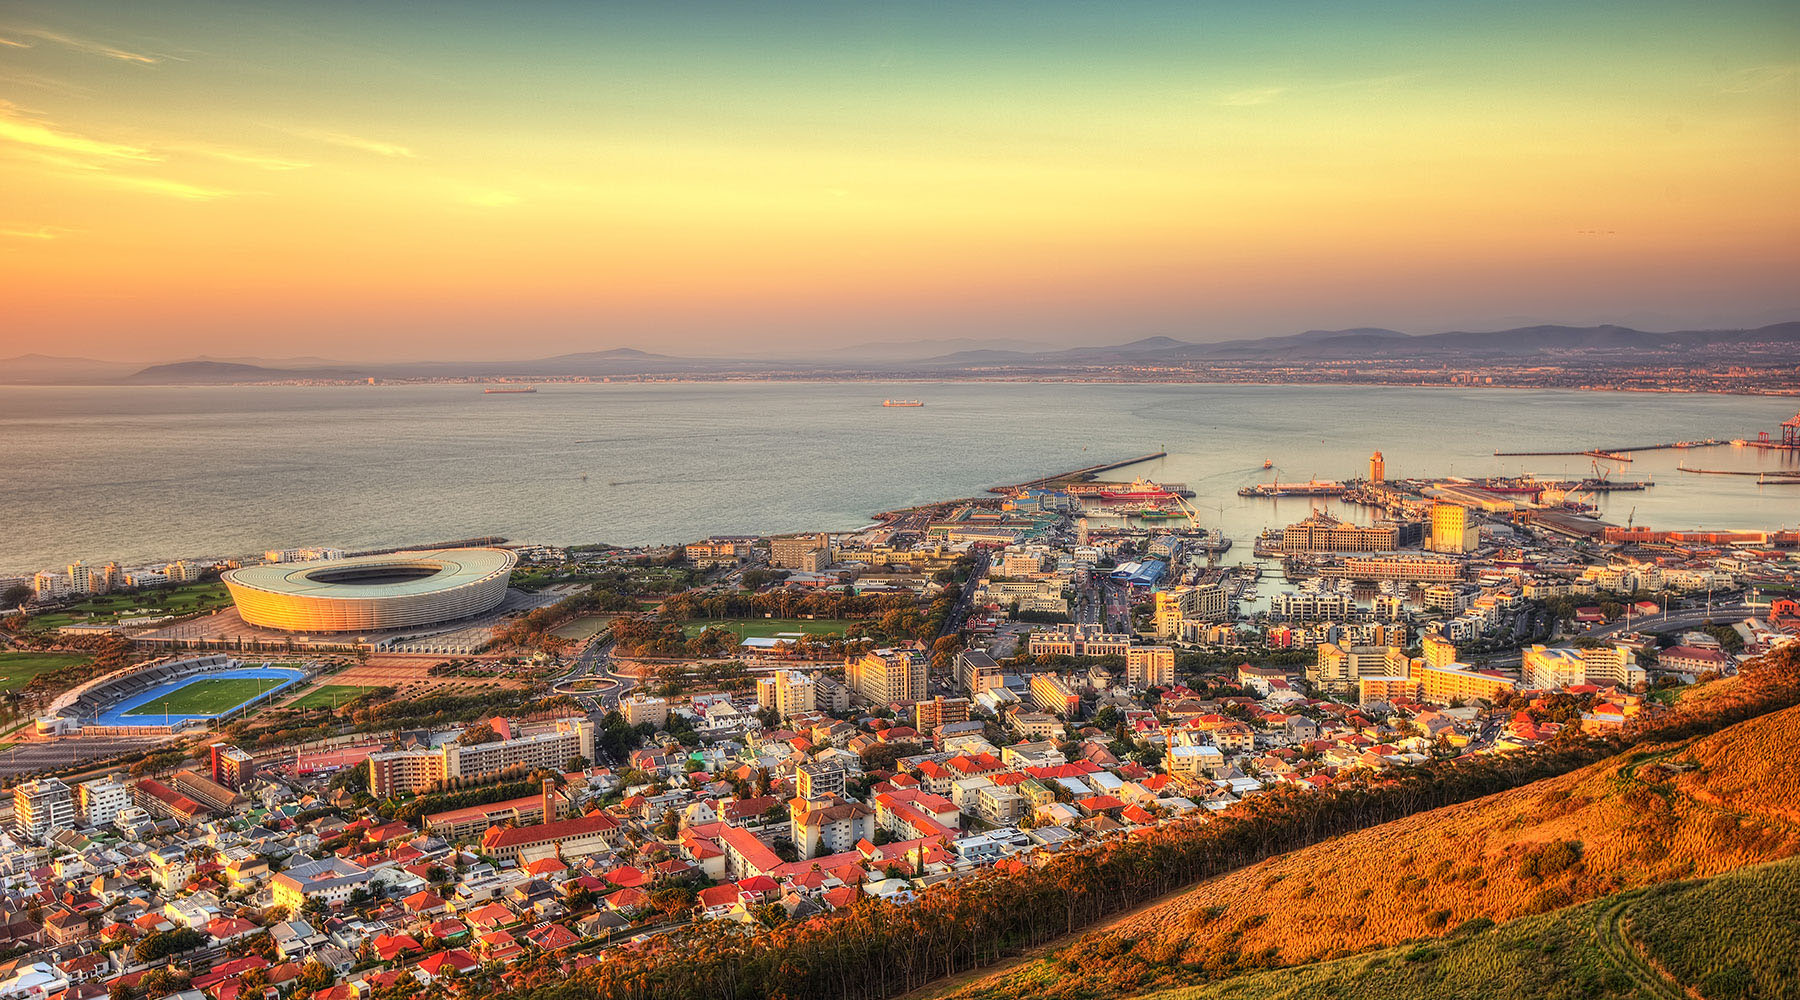 55-Night Grand Voyage: Cape Town To Rome